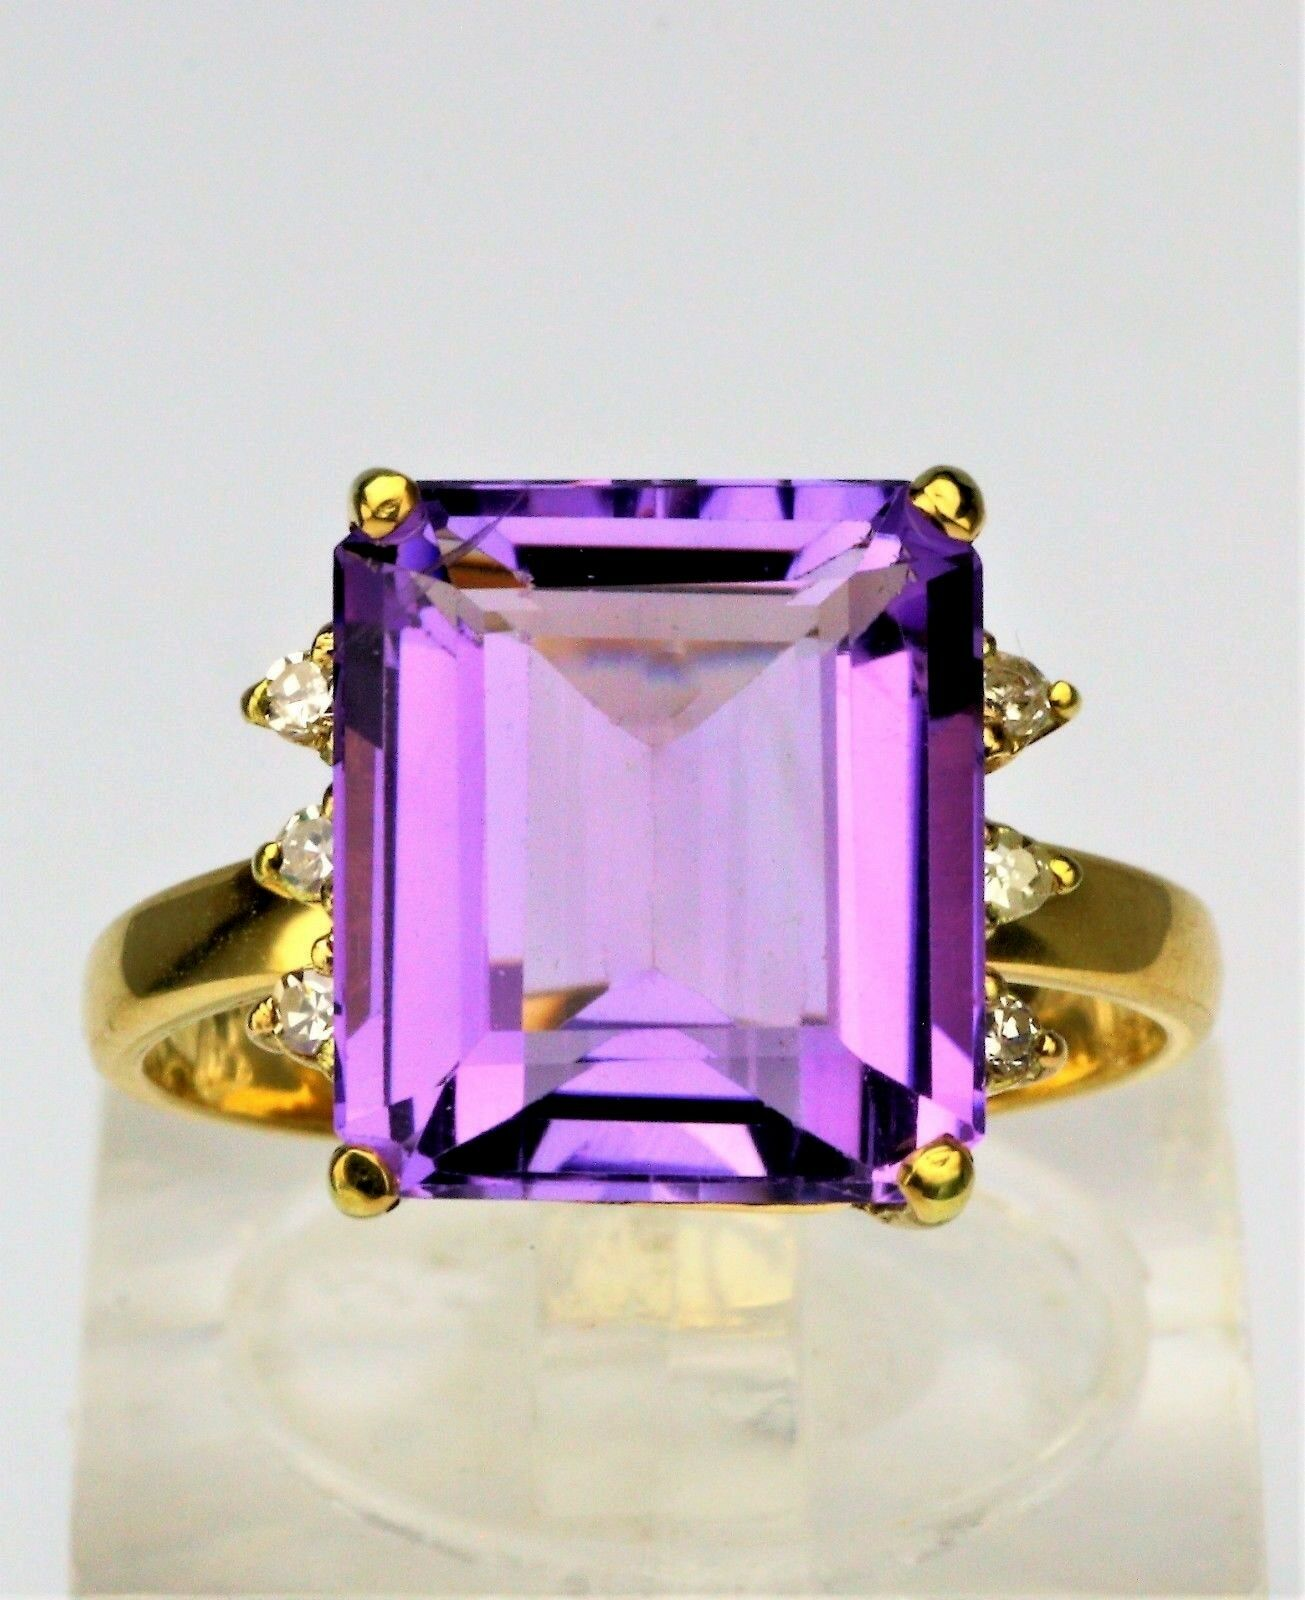 18K Yellow gold Emerald Cut Amethyst Diamond Accent Ring Vintage